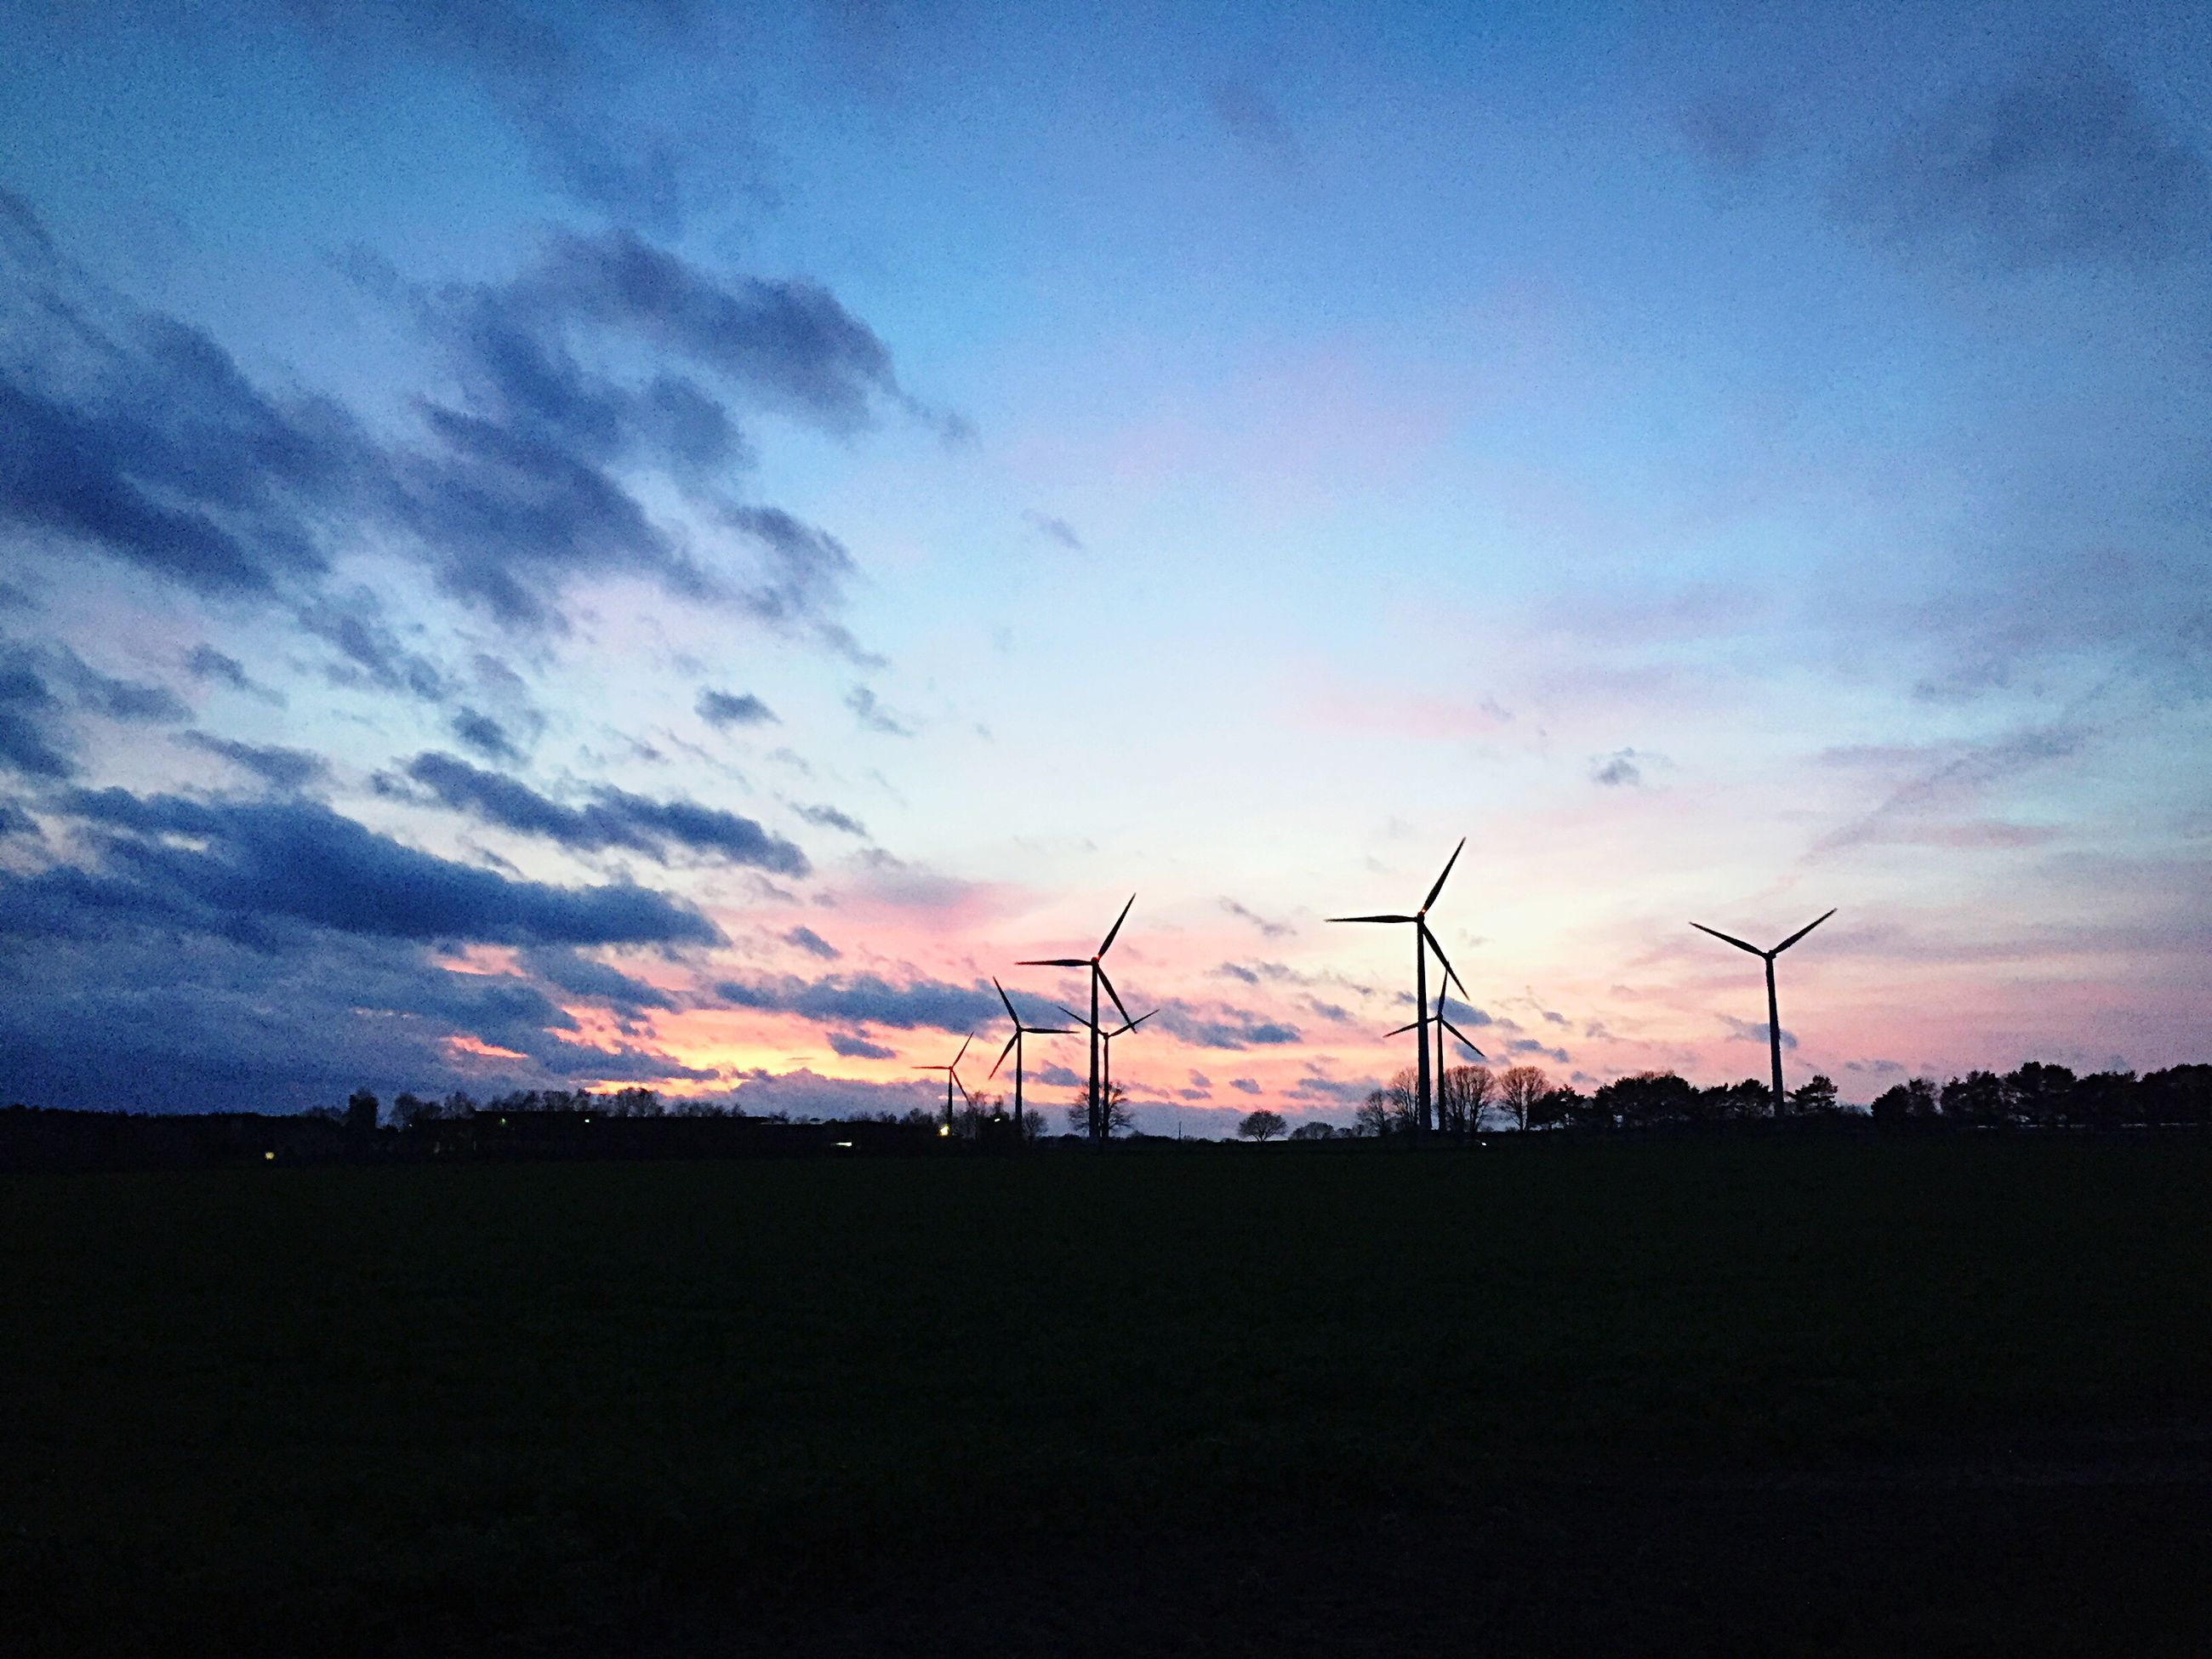 fuel and power generation, wind turbine, wind power, silhouette, technology, environmental conservation, electricity pylon, alternative energy, windmill, sky, renewable energy, sunset, landscape, electricity, power supply, field, power line, cloud - sky, tranquility, tranquil scene